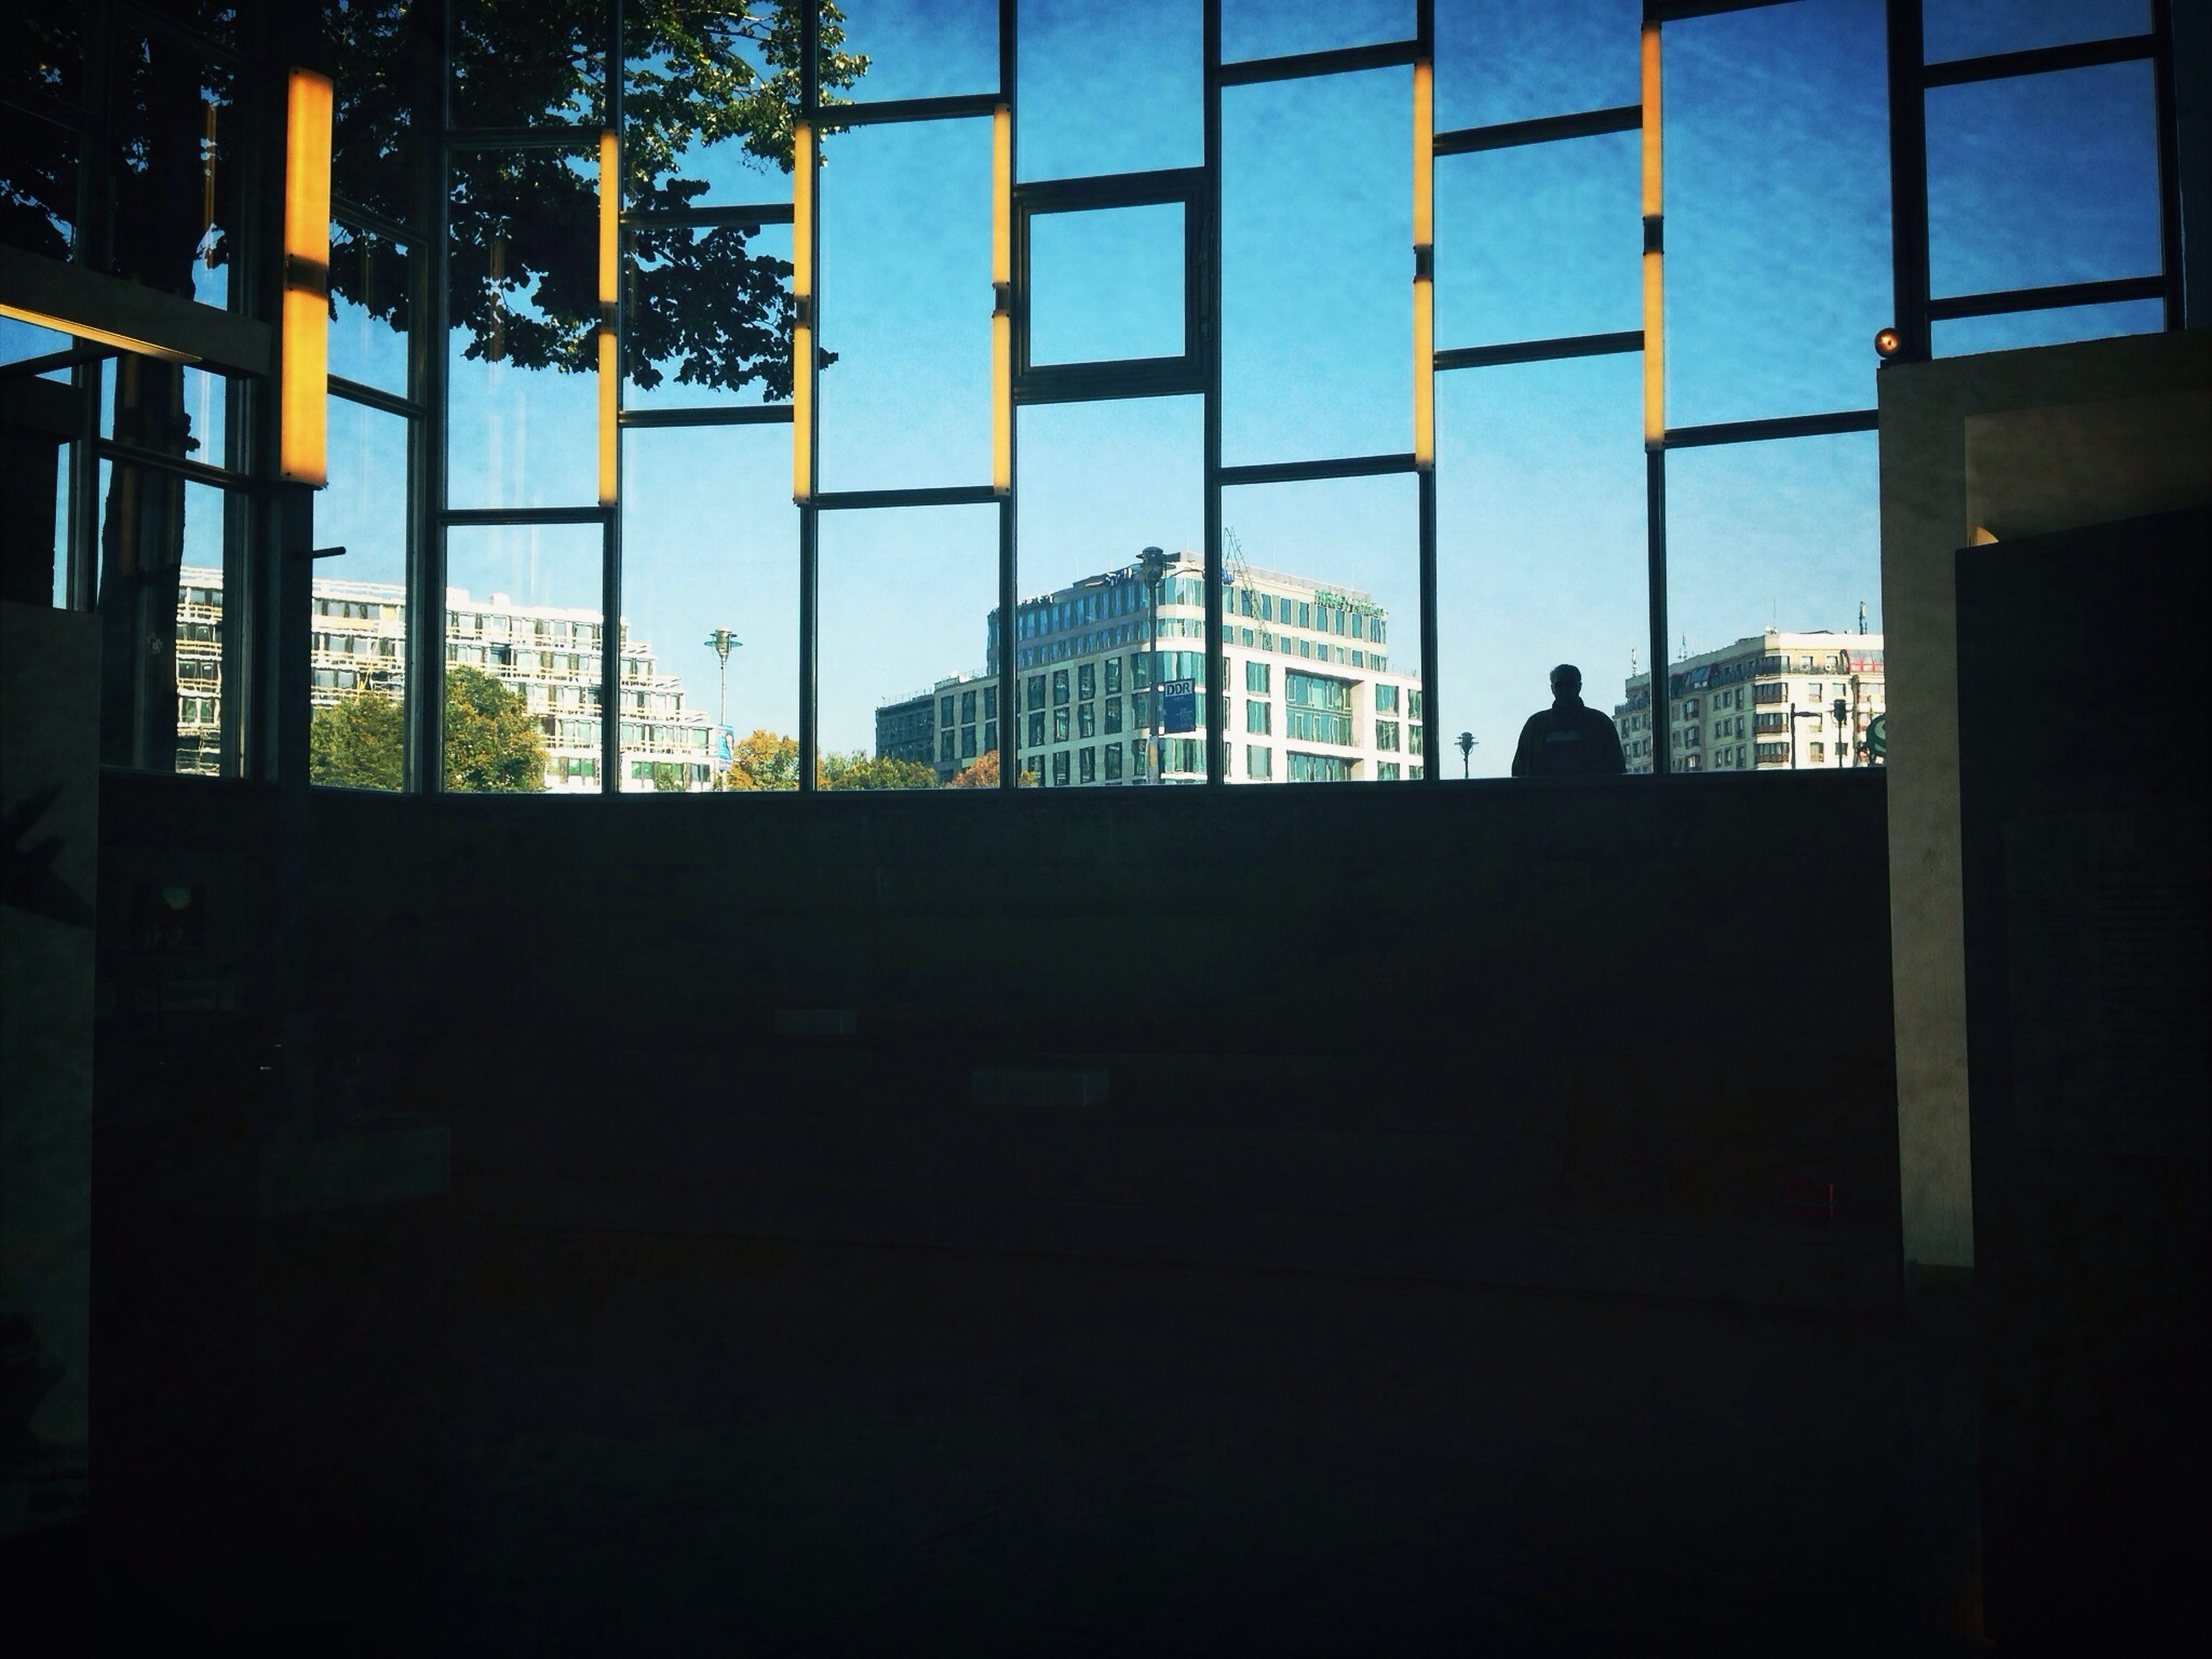 architecture, building exterior, built structure, silhouette, window, city, building, glass - material, residential building, sky, city life, residential structure, clear sky, sunlight, shadow, dark, office building, day, modern